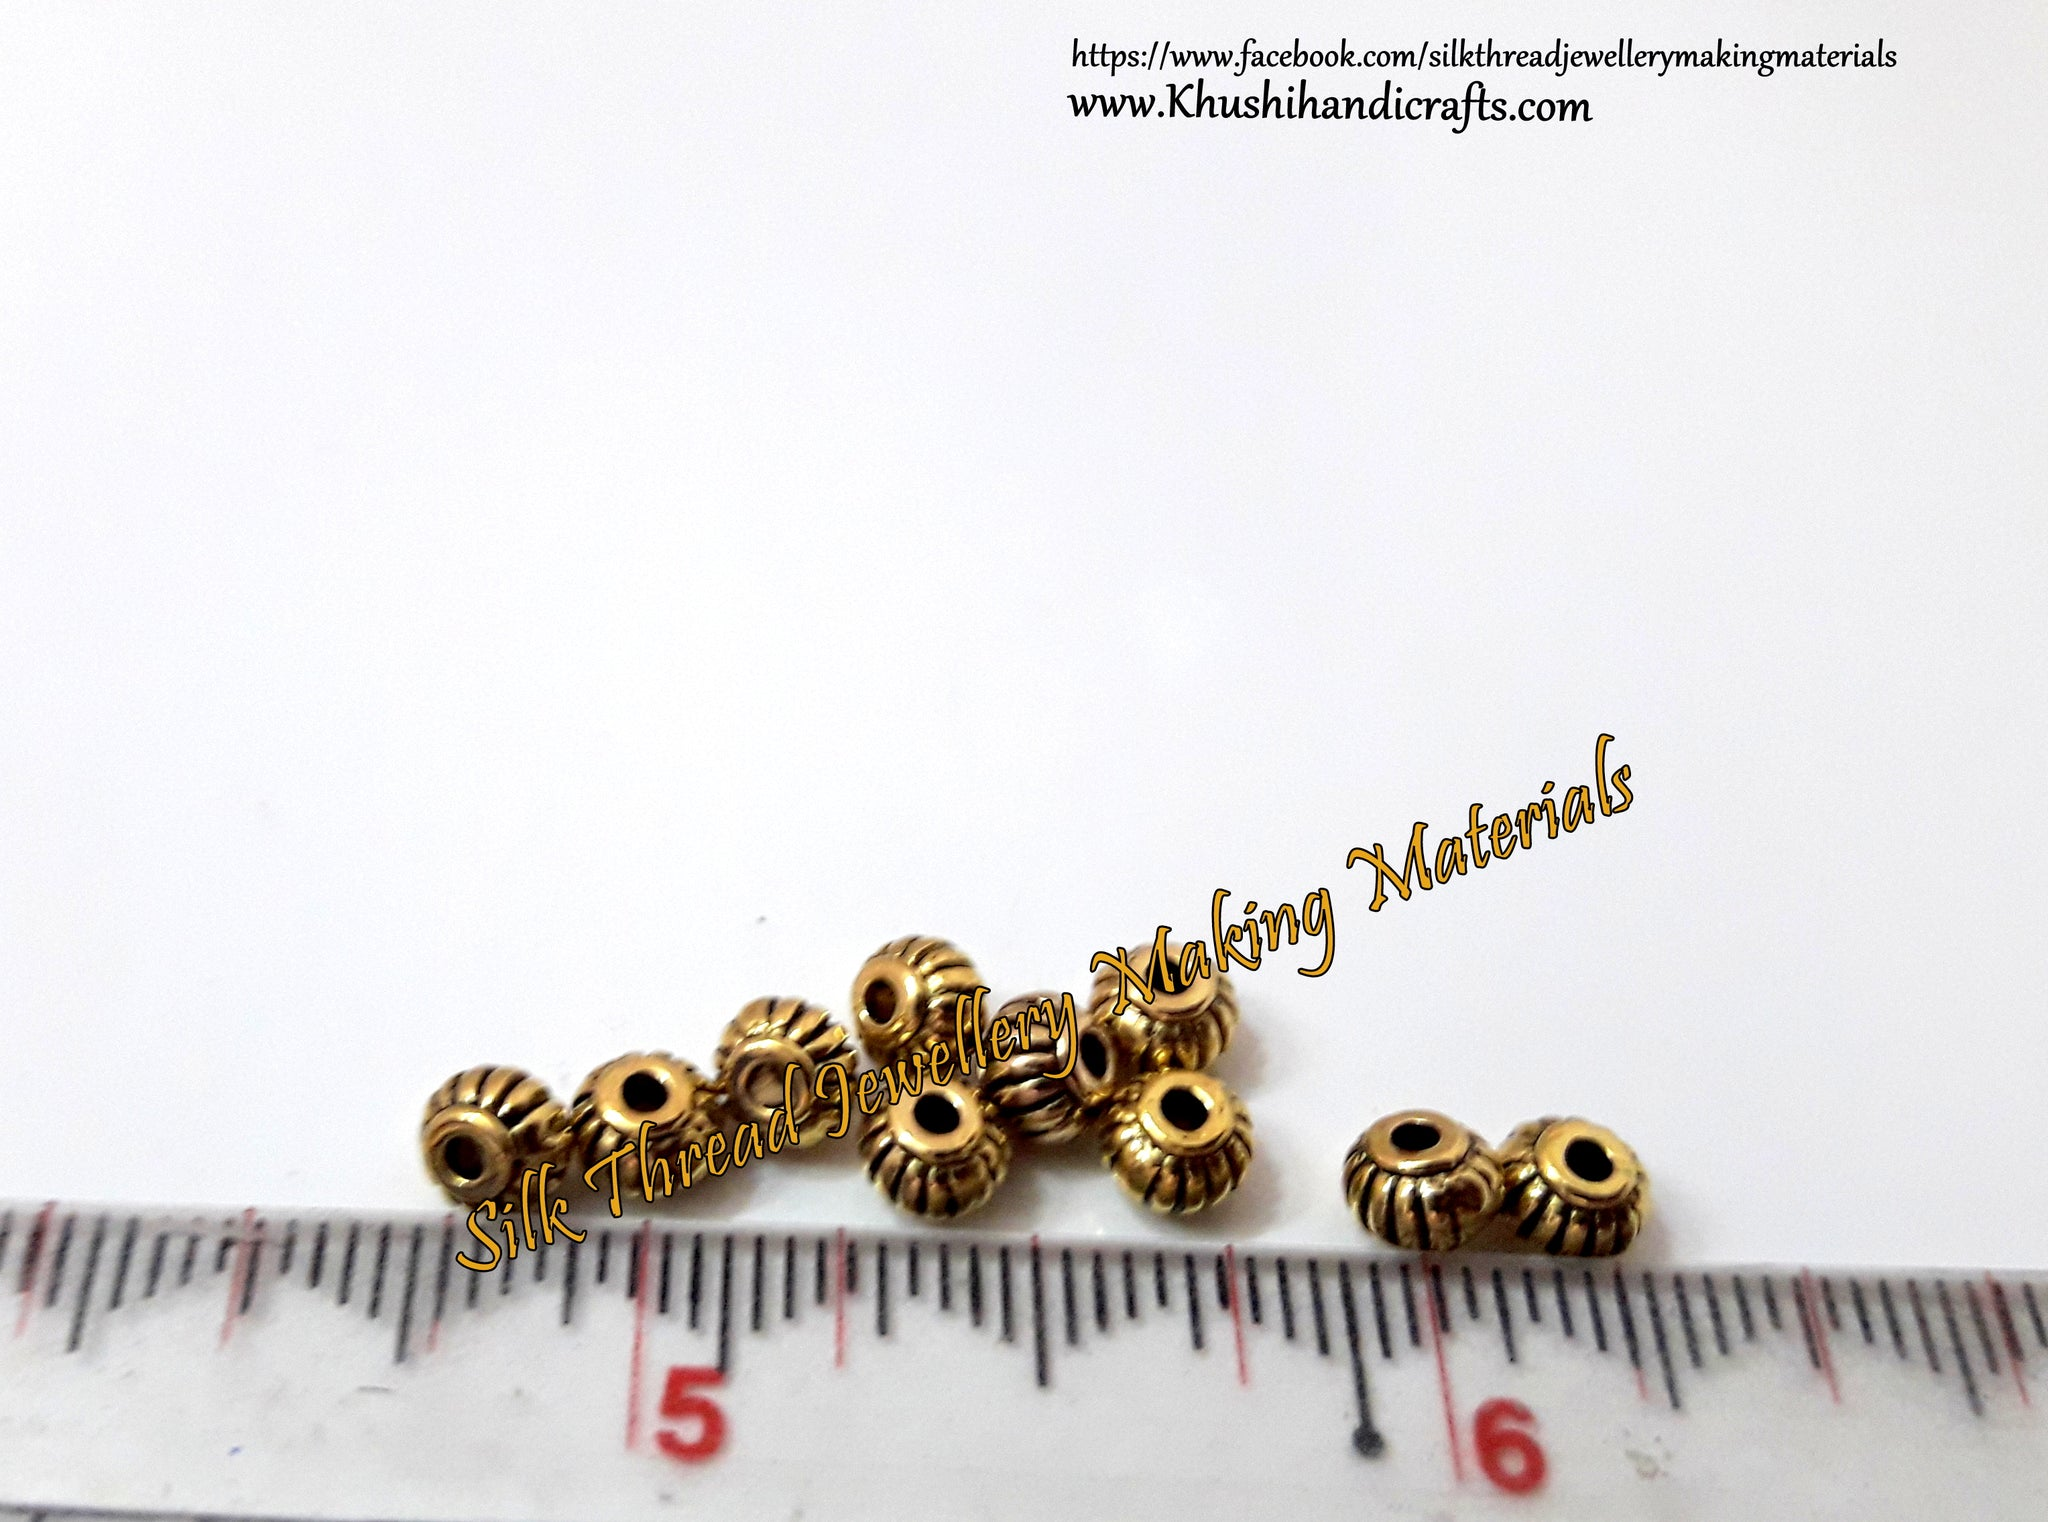 Round spacer beads